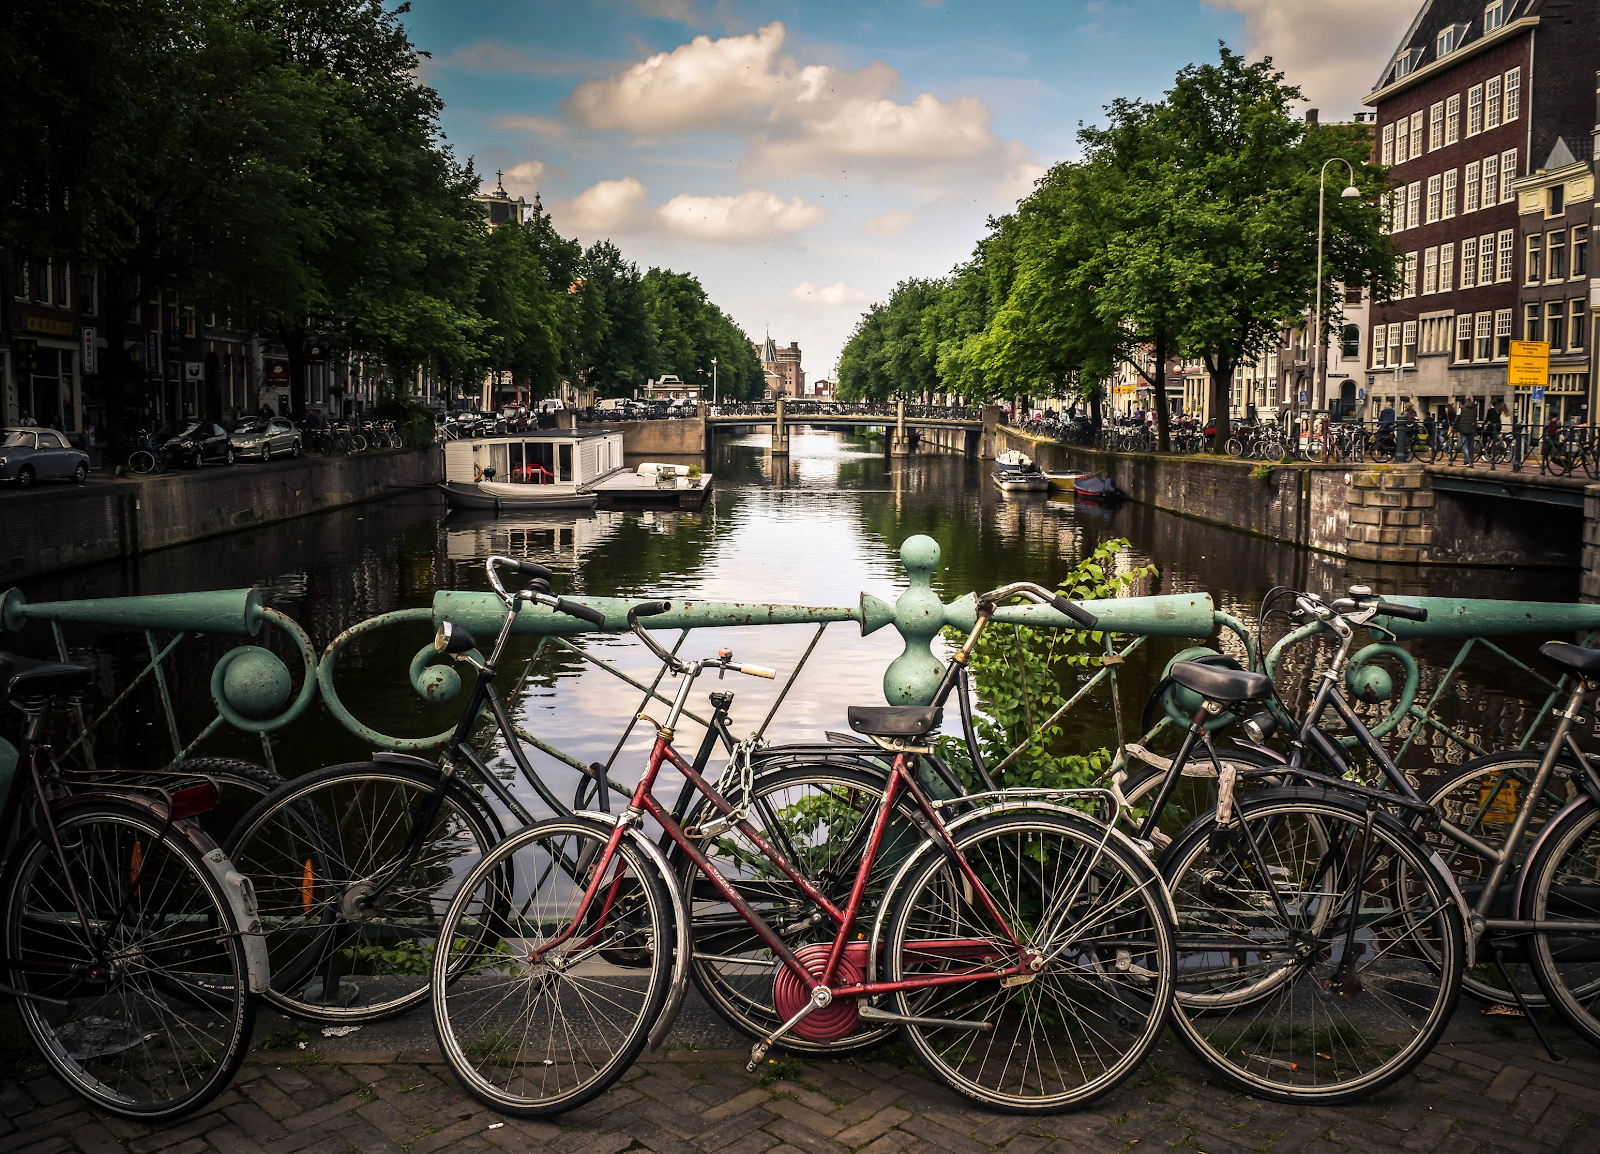 /comparing-the-amsterdam-and-boulder-startup-scenes-81ccb182ef24 feature image